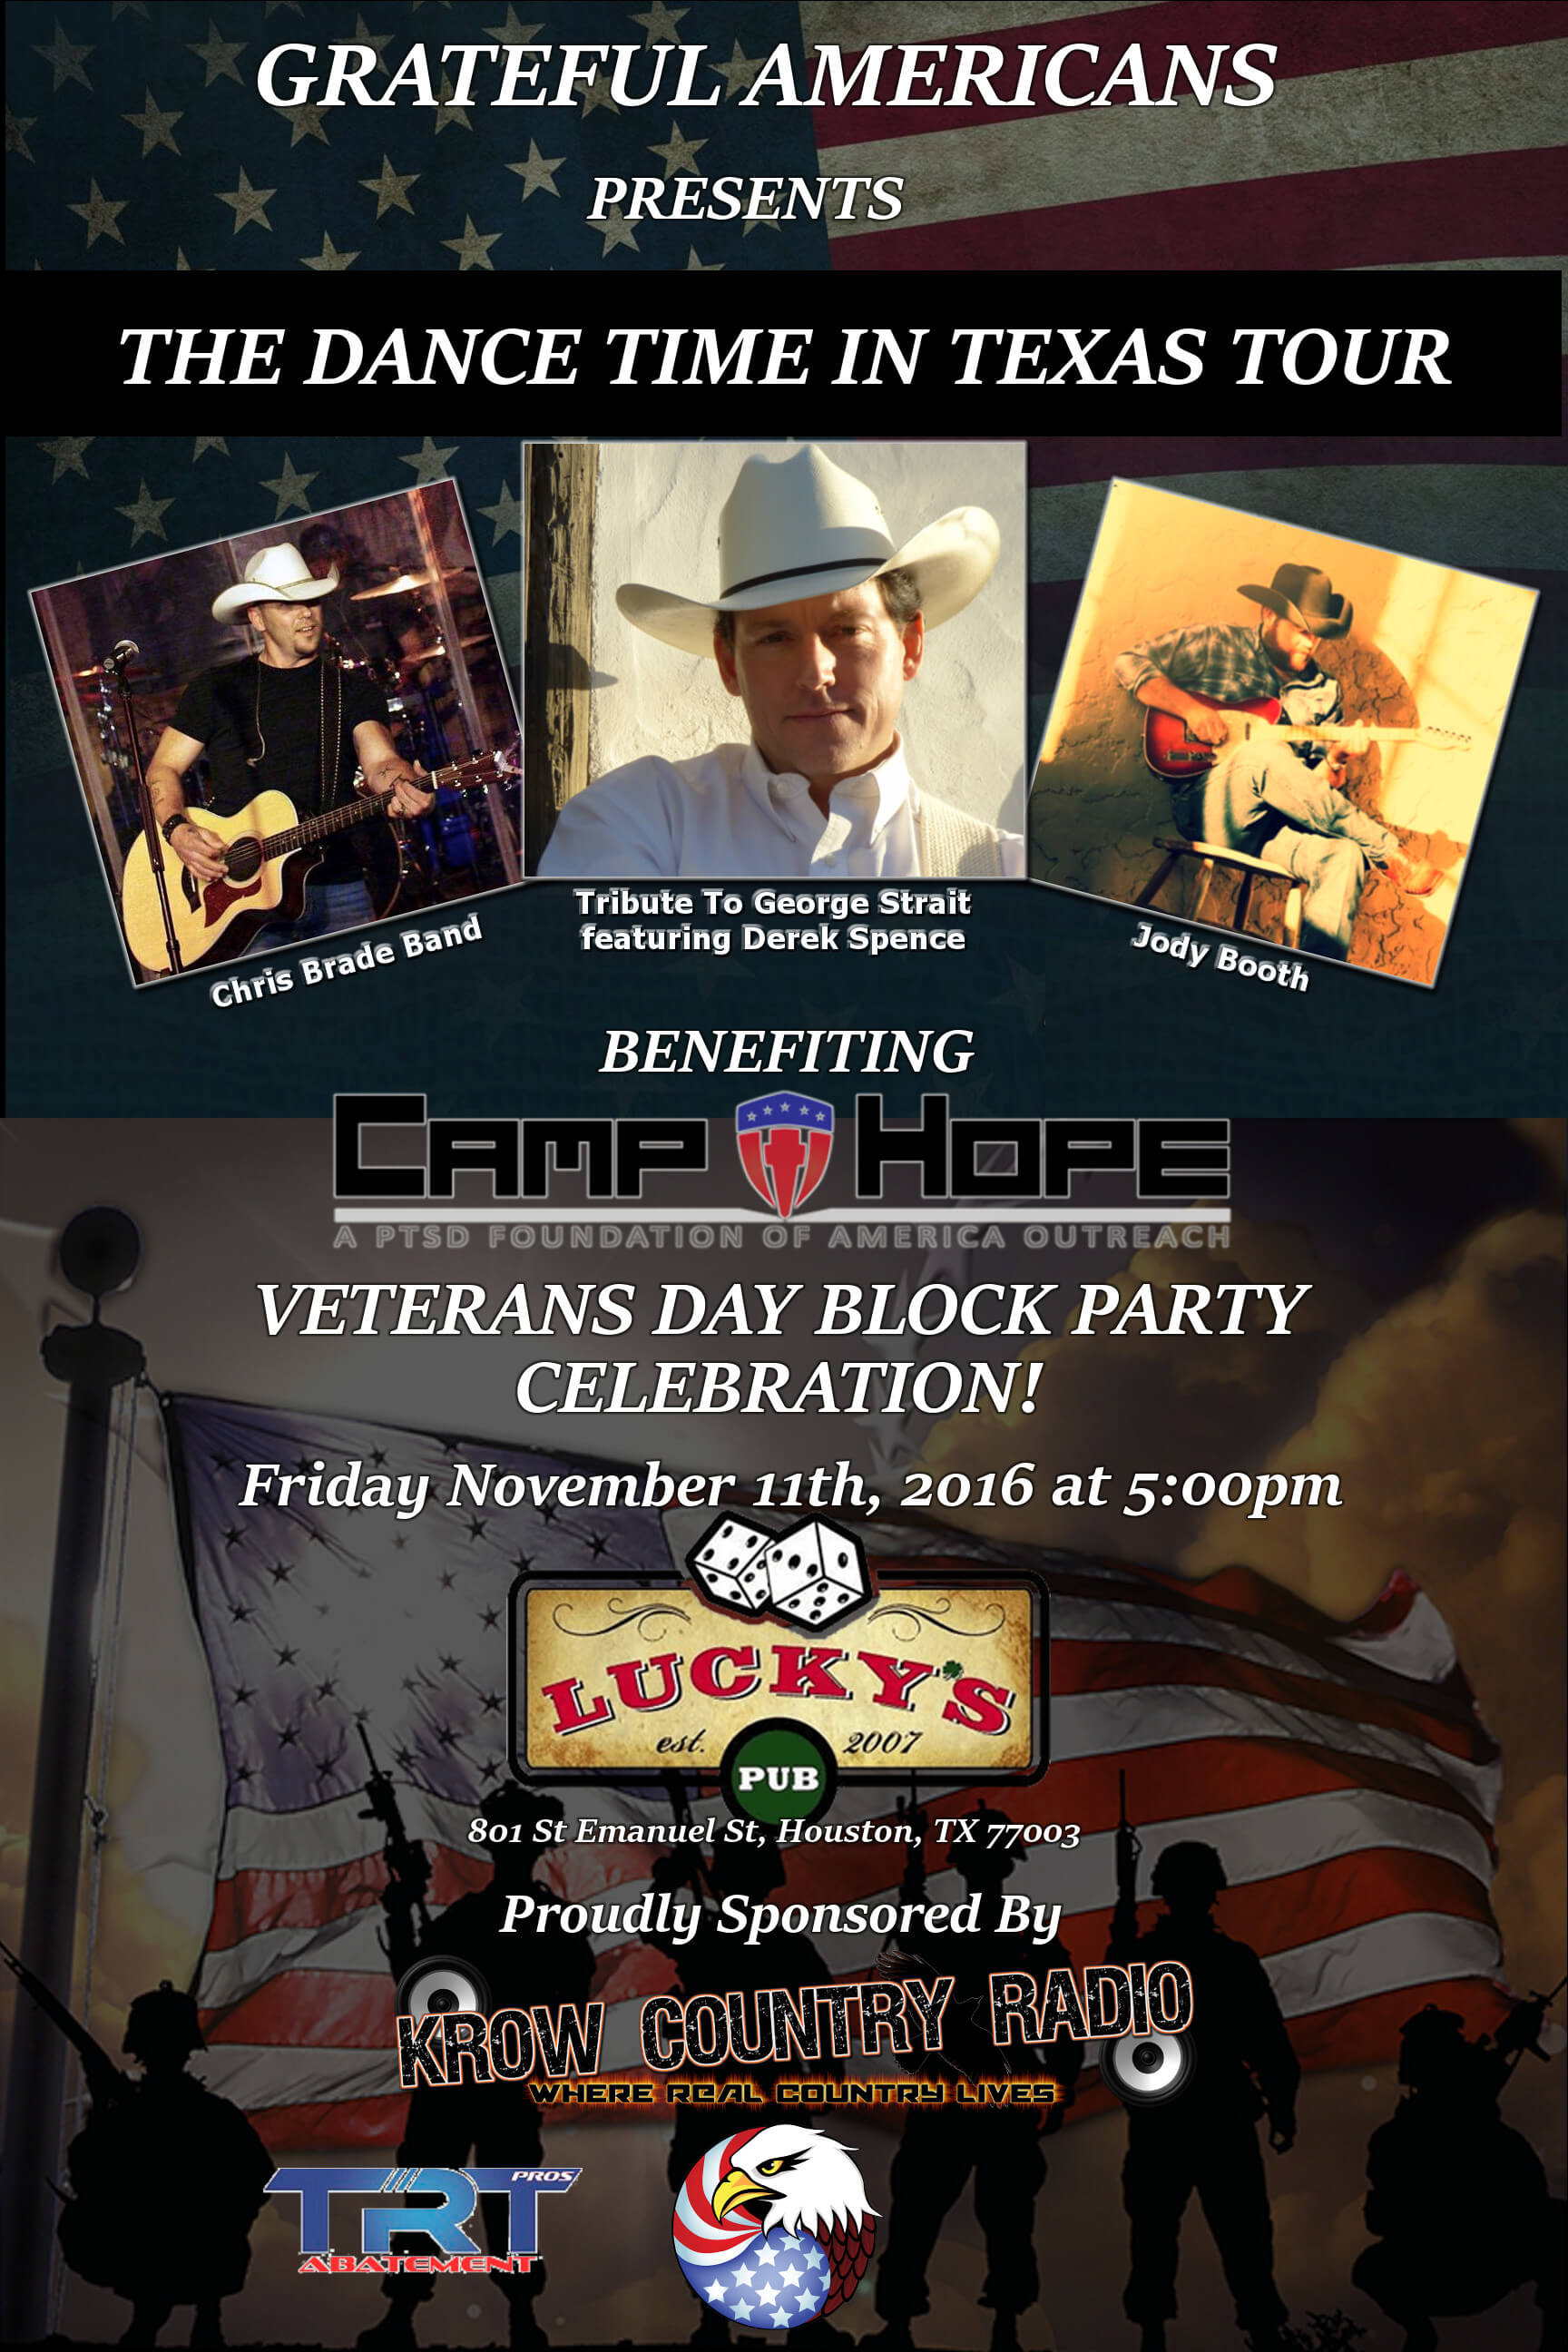 Veterans Block Party Celebration!